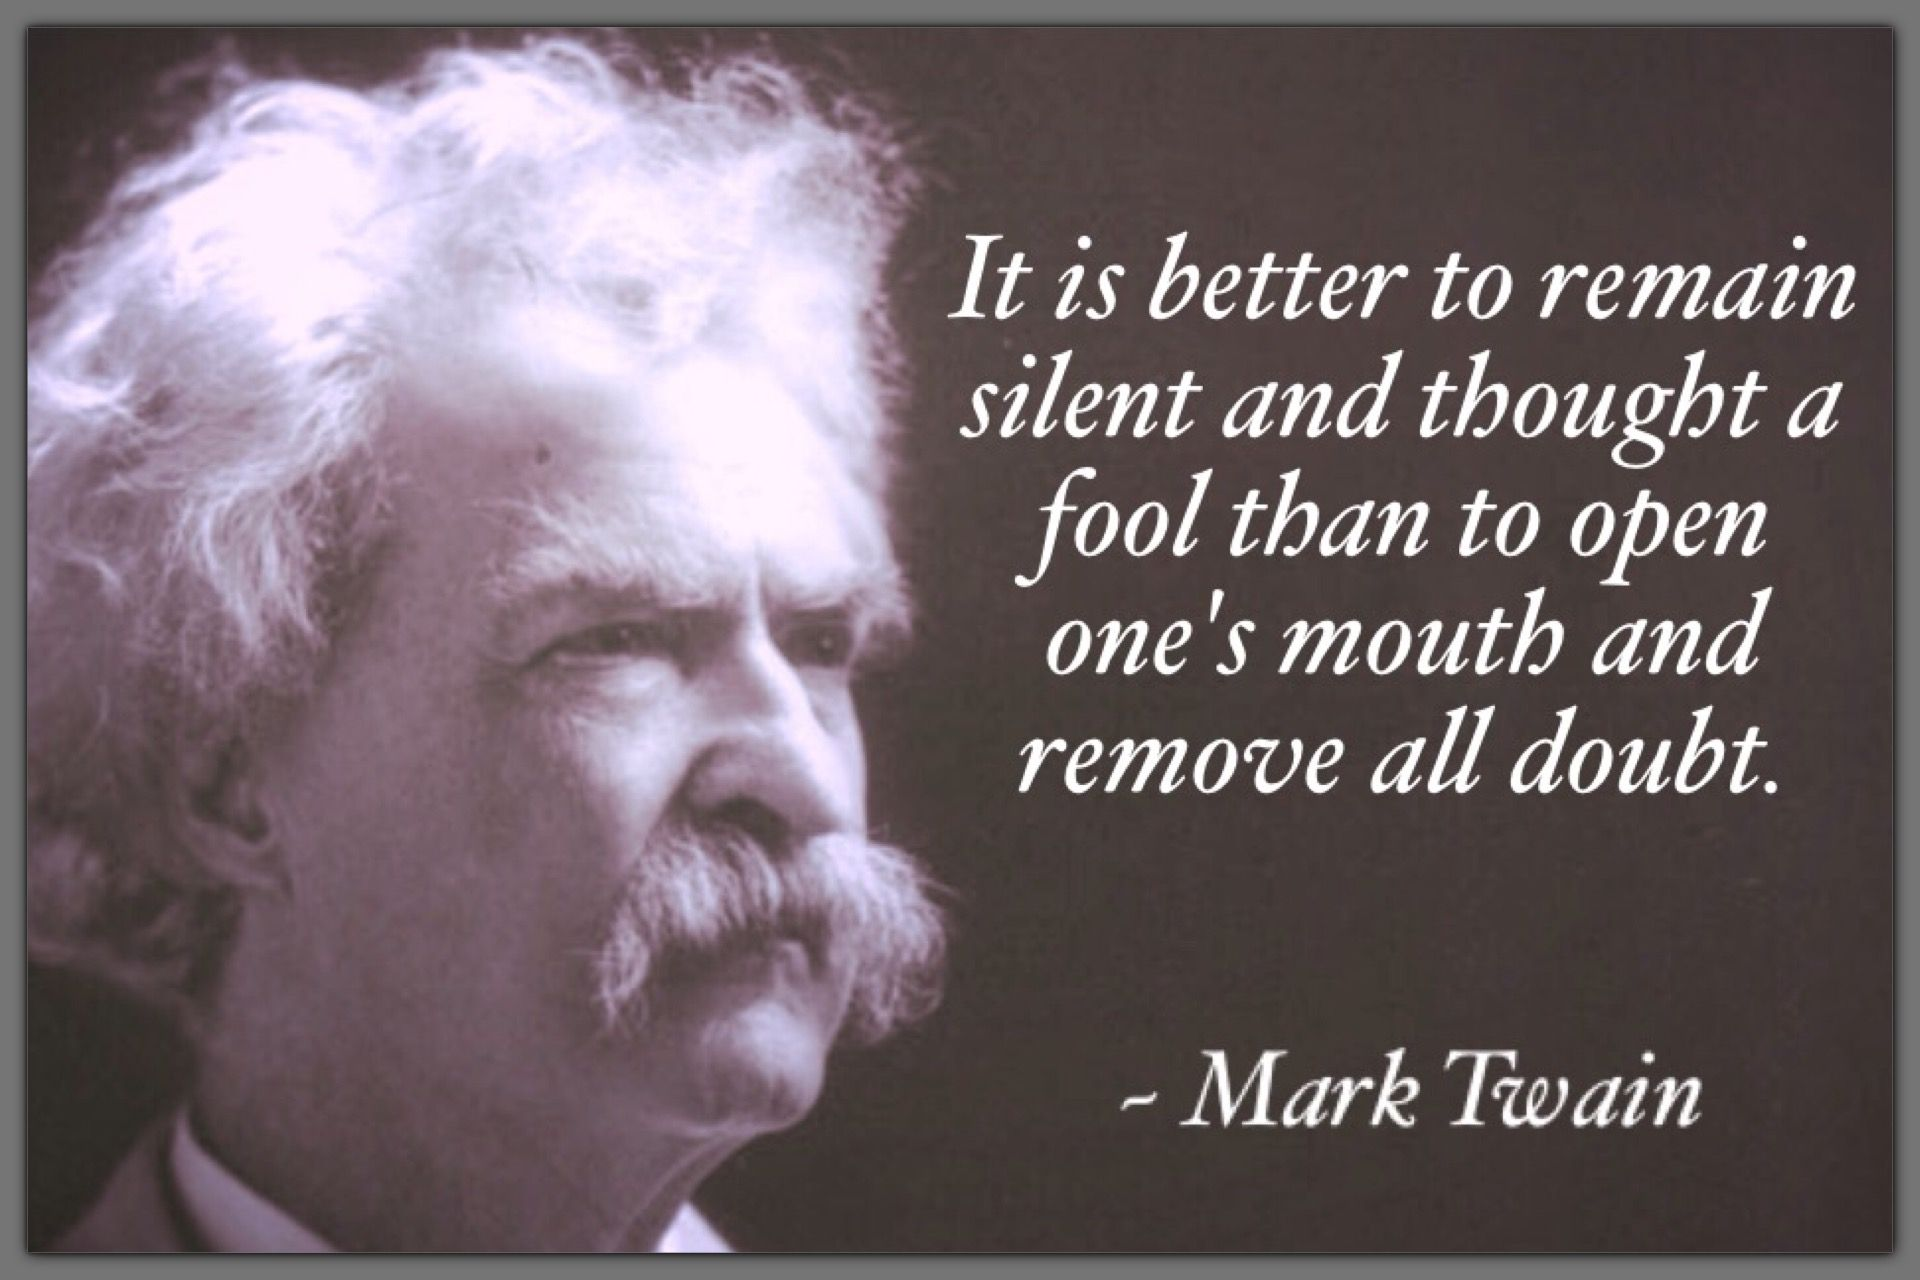 Mark Twain Better To Remain Silent Thought A Fool Than To Open One S Mouth Remove All Doubt Thoughts How To Remove The Fool